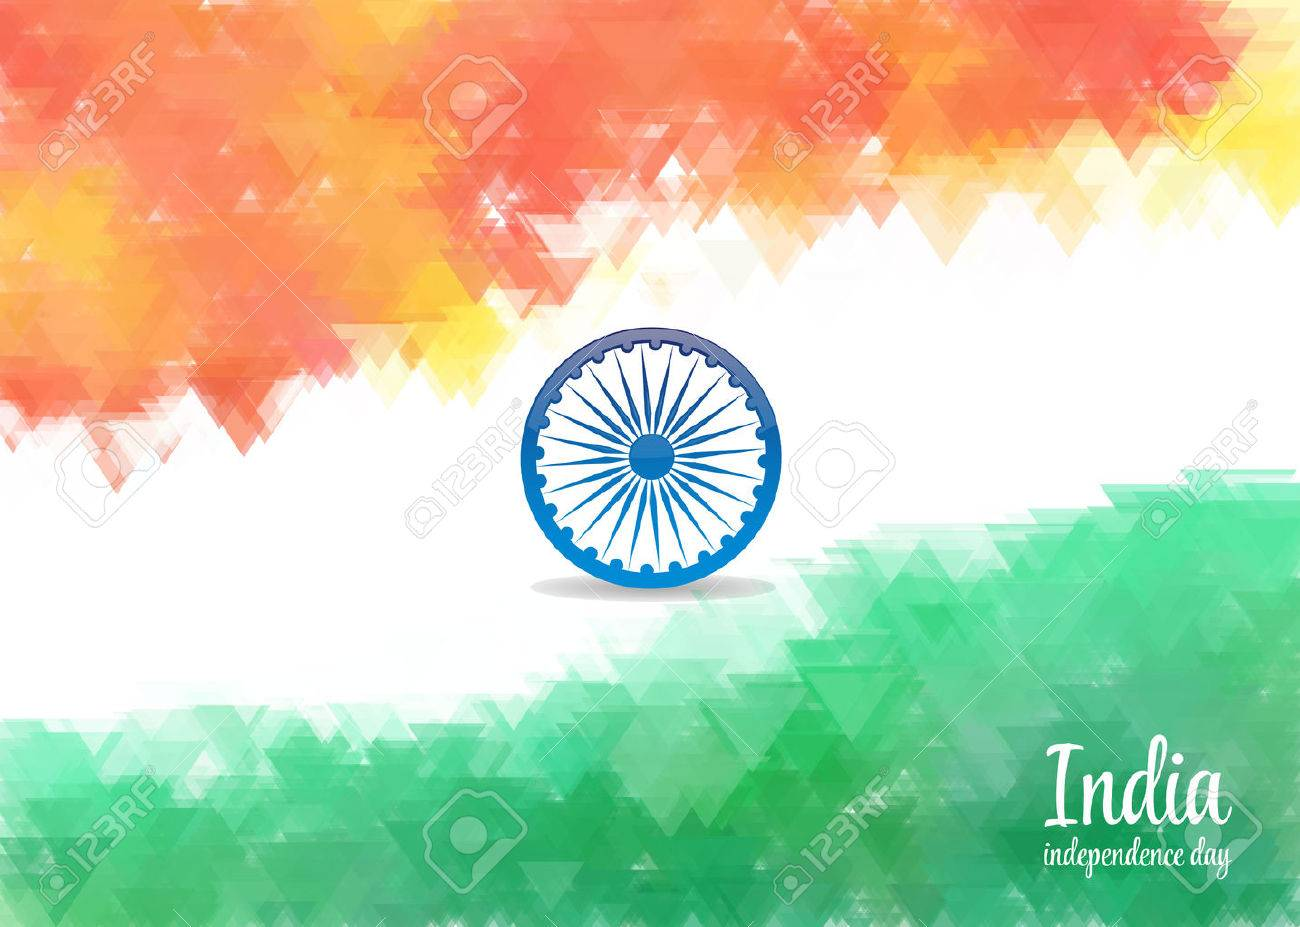 Watercolor Background For Indian Independence Day Background